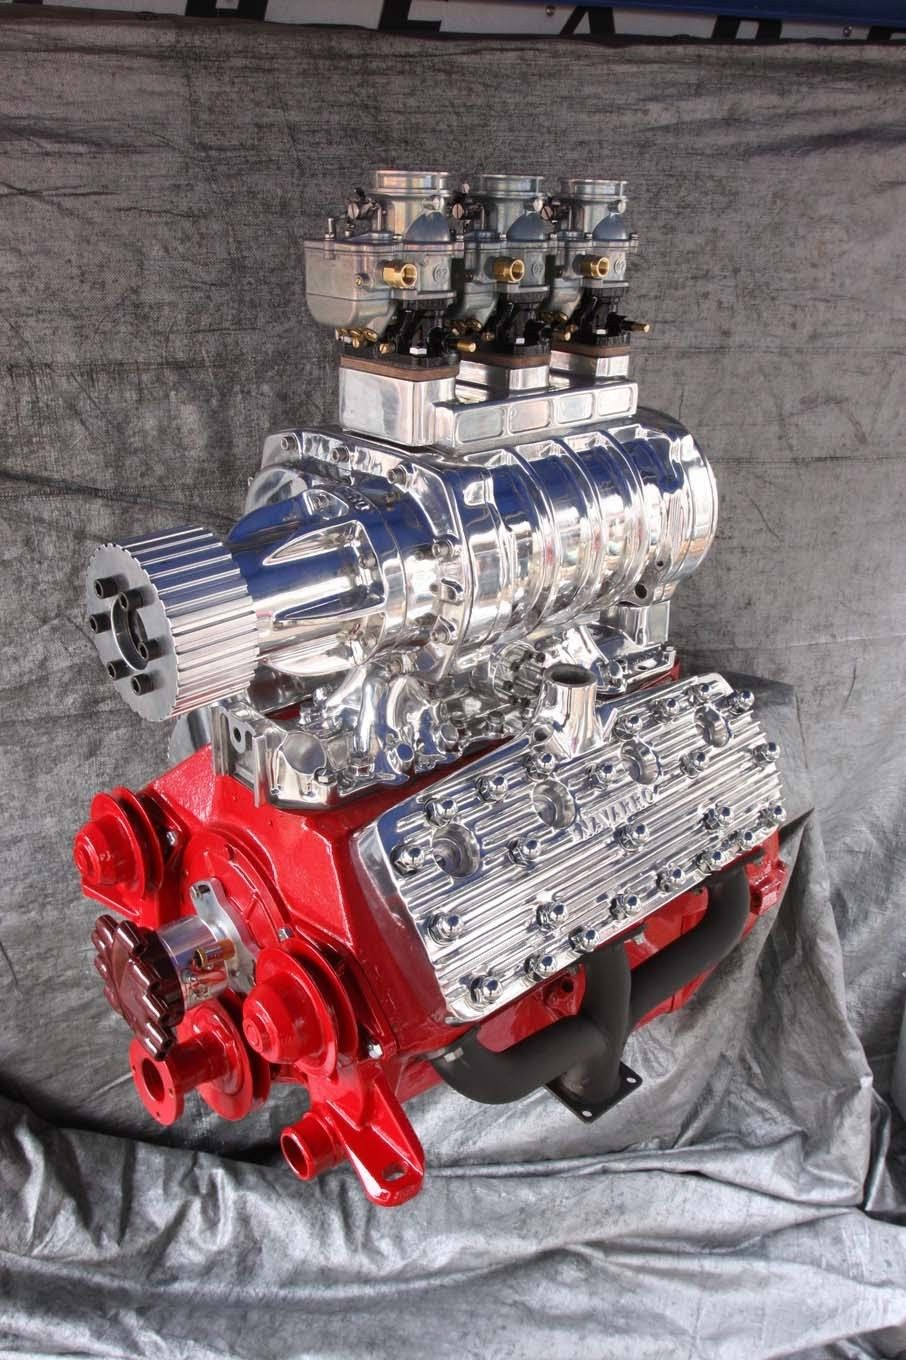 Pin by Parke Ewing on Best Engines of All Time | Motor